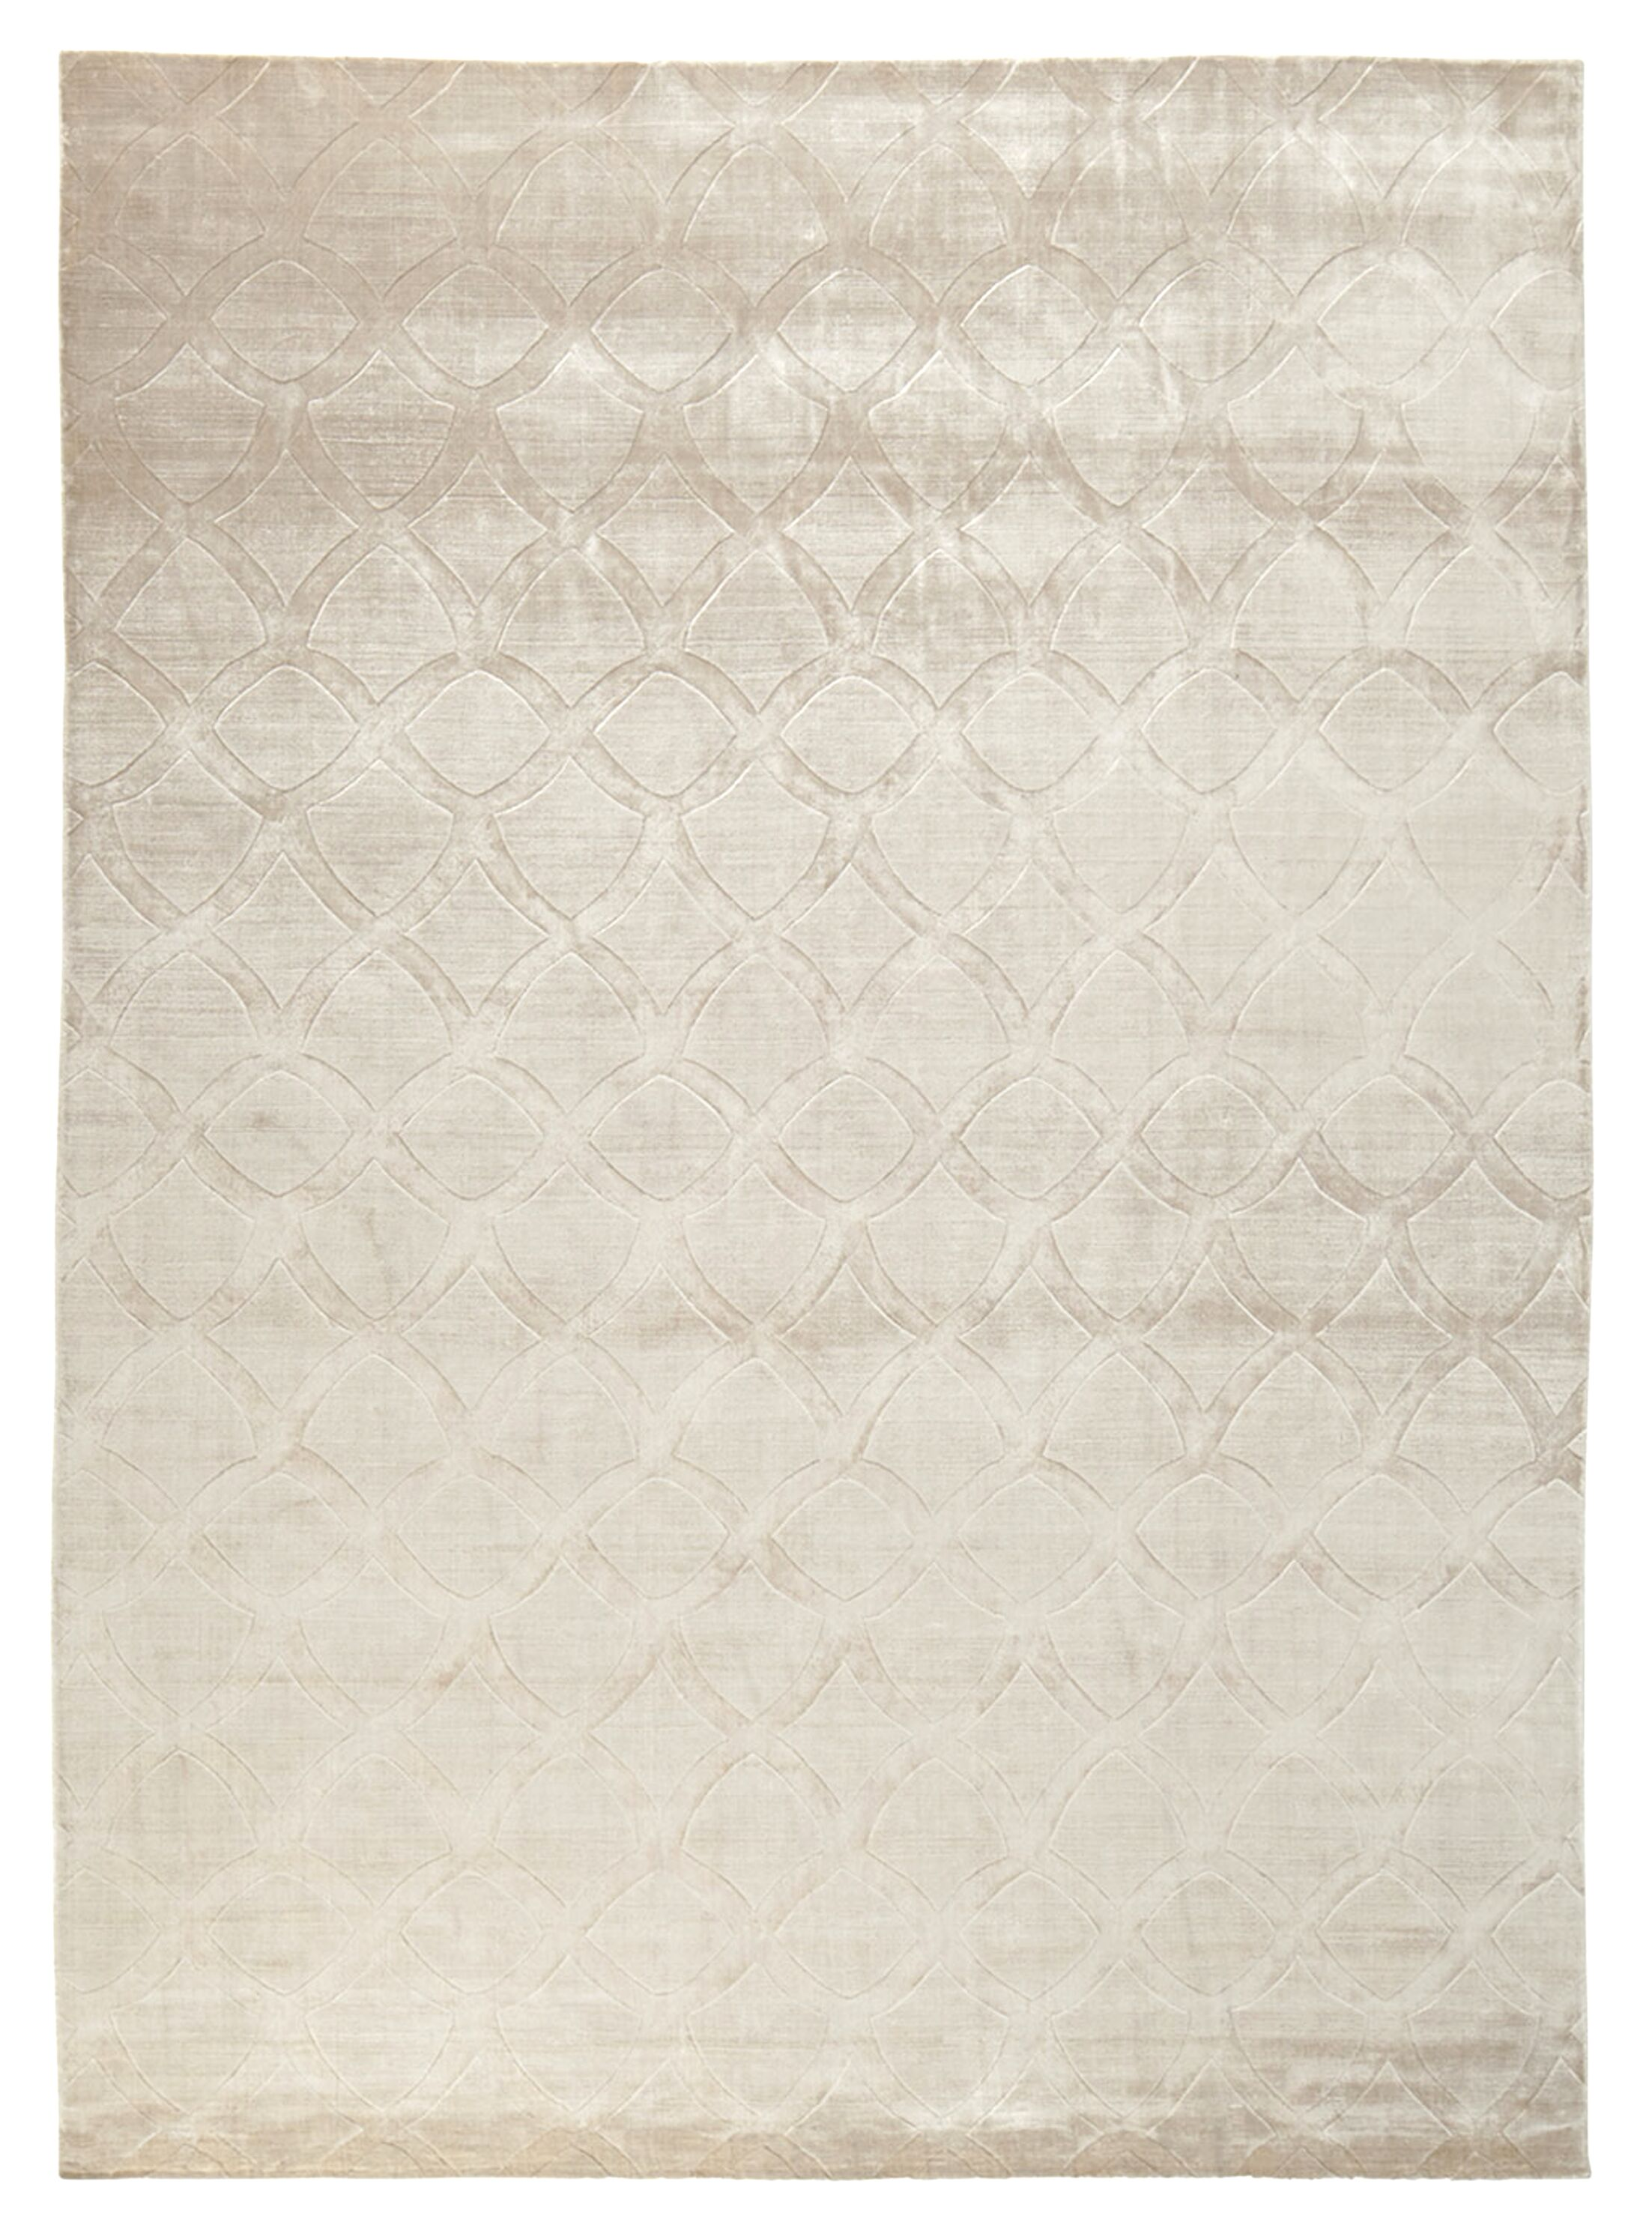 Smooch Carved Hand-Woven Silk Silver Area Rug Rug Size: Rectangle 9' x 12'